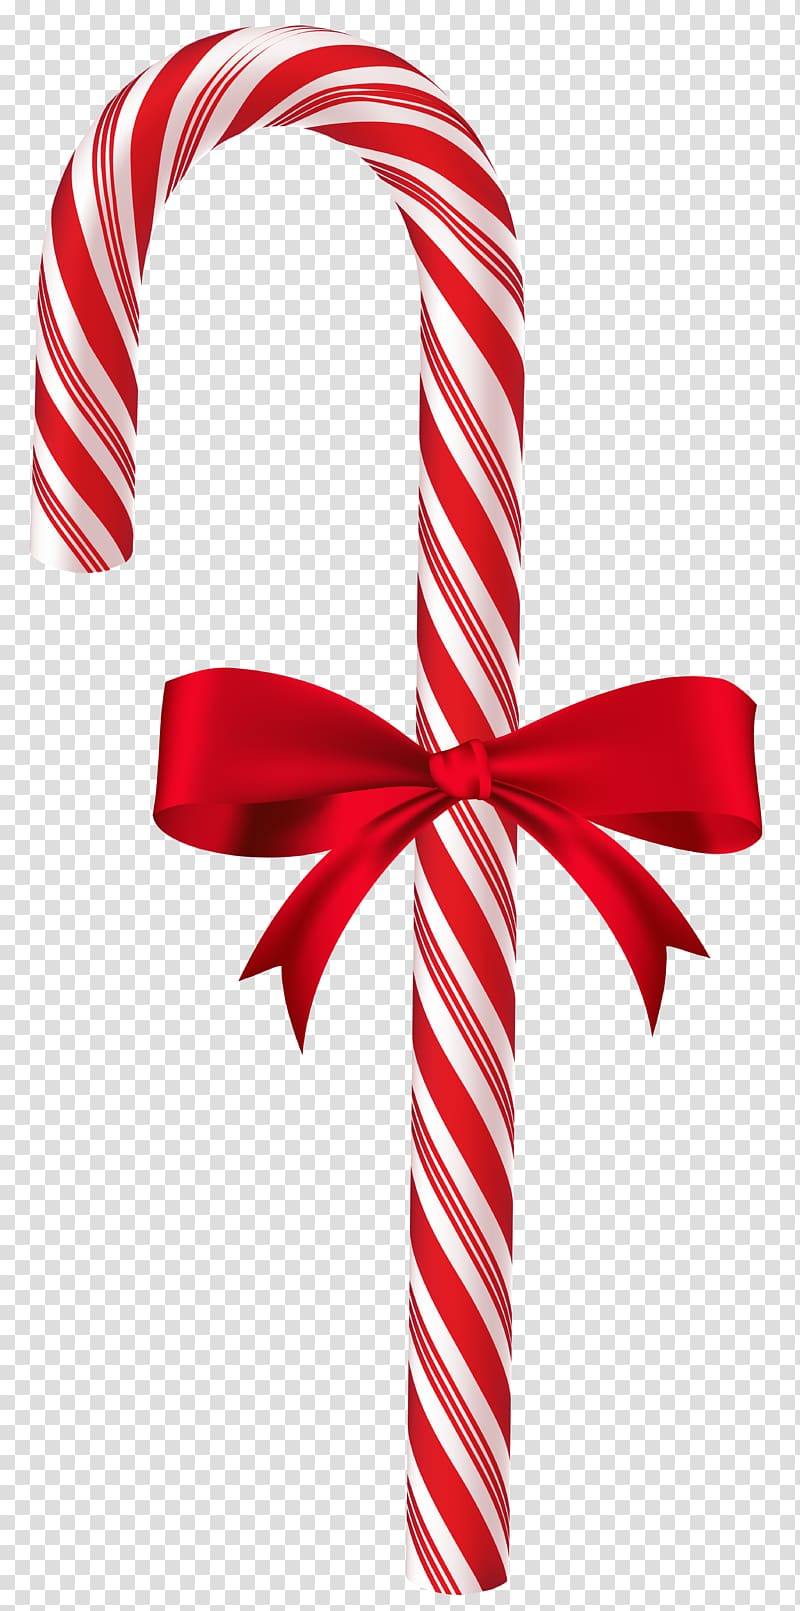 Candy cane ribbon clipart png black and white download Cane with ribbon poster, Candy cane Christmas , Candy Cane with Red ... png black and white download